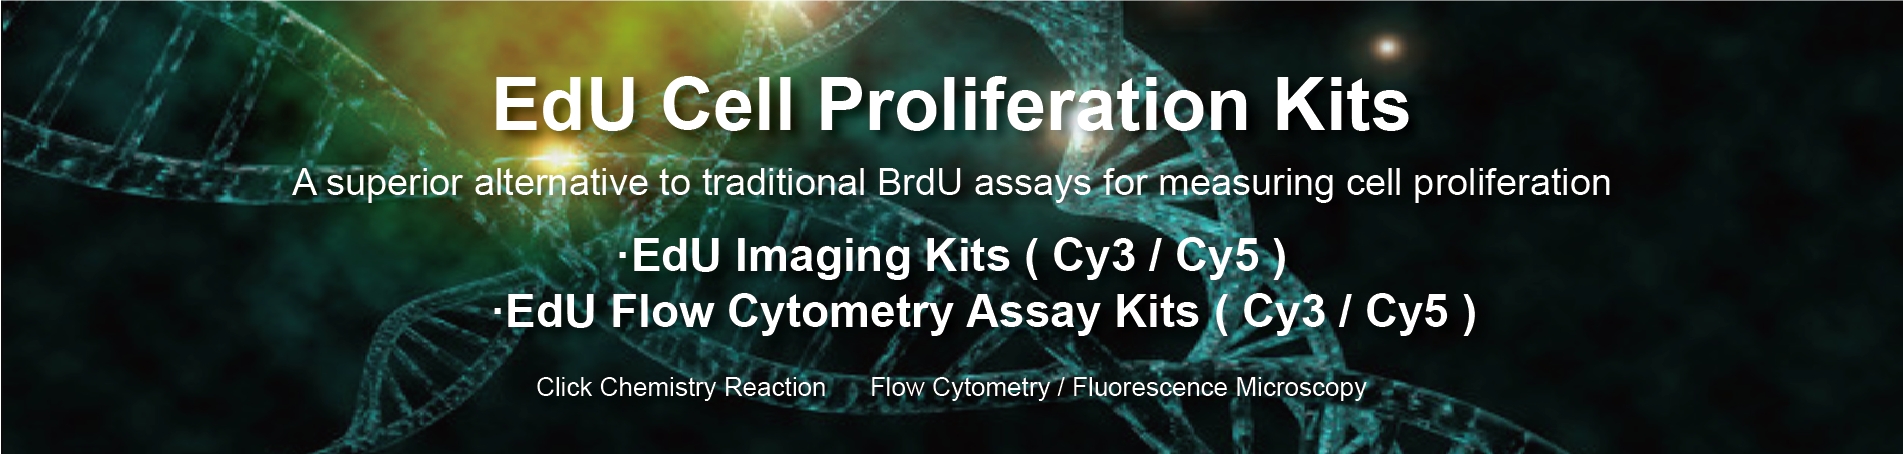 EdU Cell Proliferation Kits